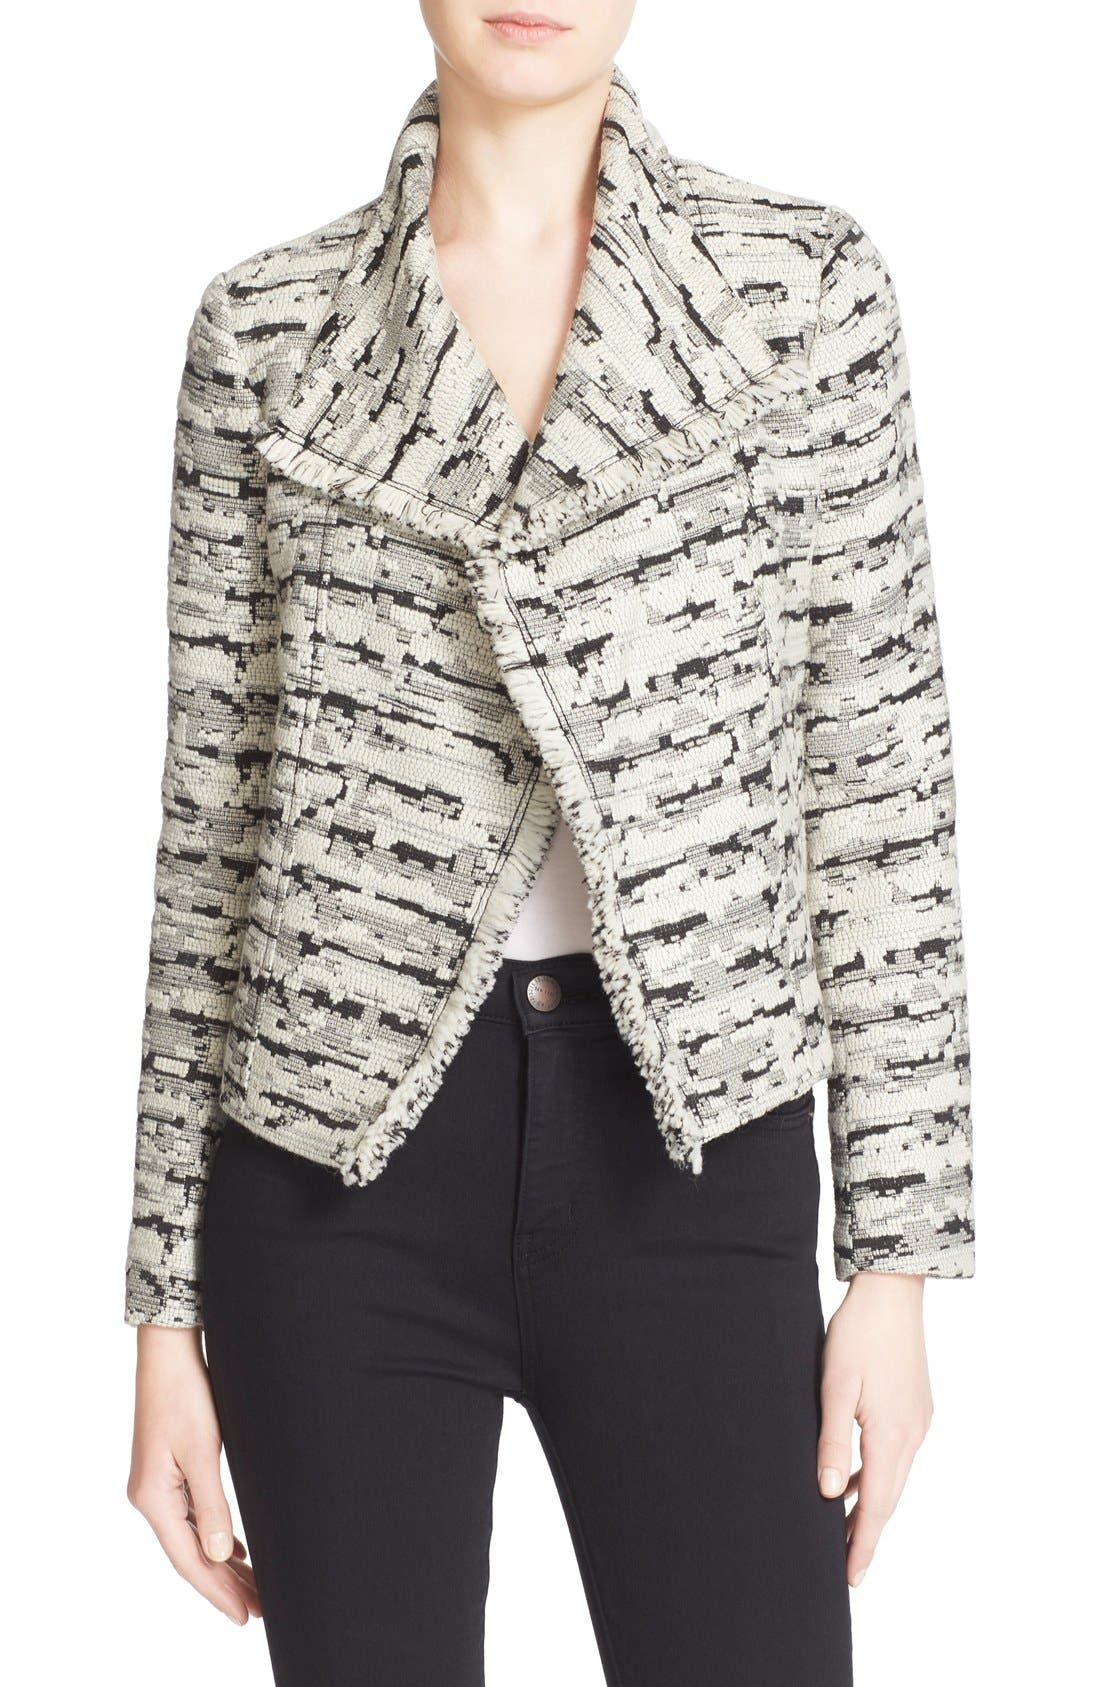 Alternate Image 1 Selected - Vince Fringe Trim Jacquard Jacket